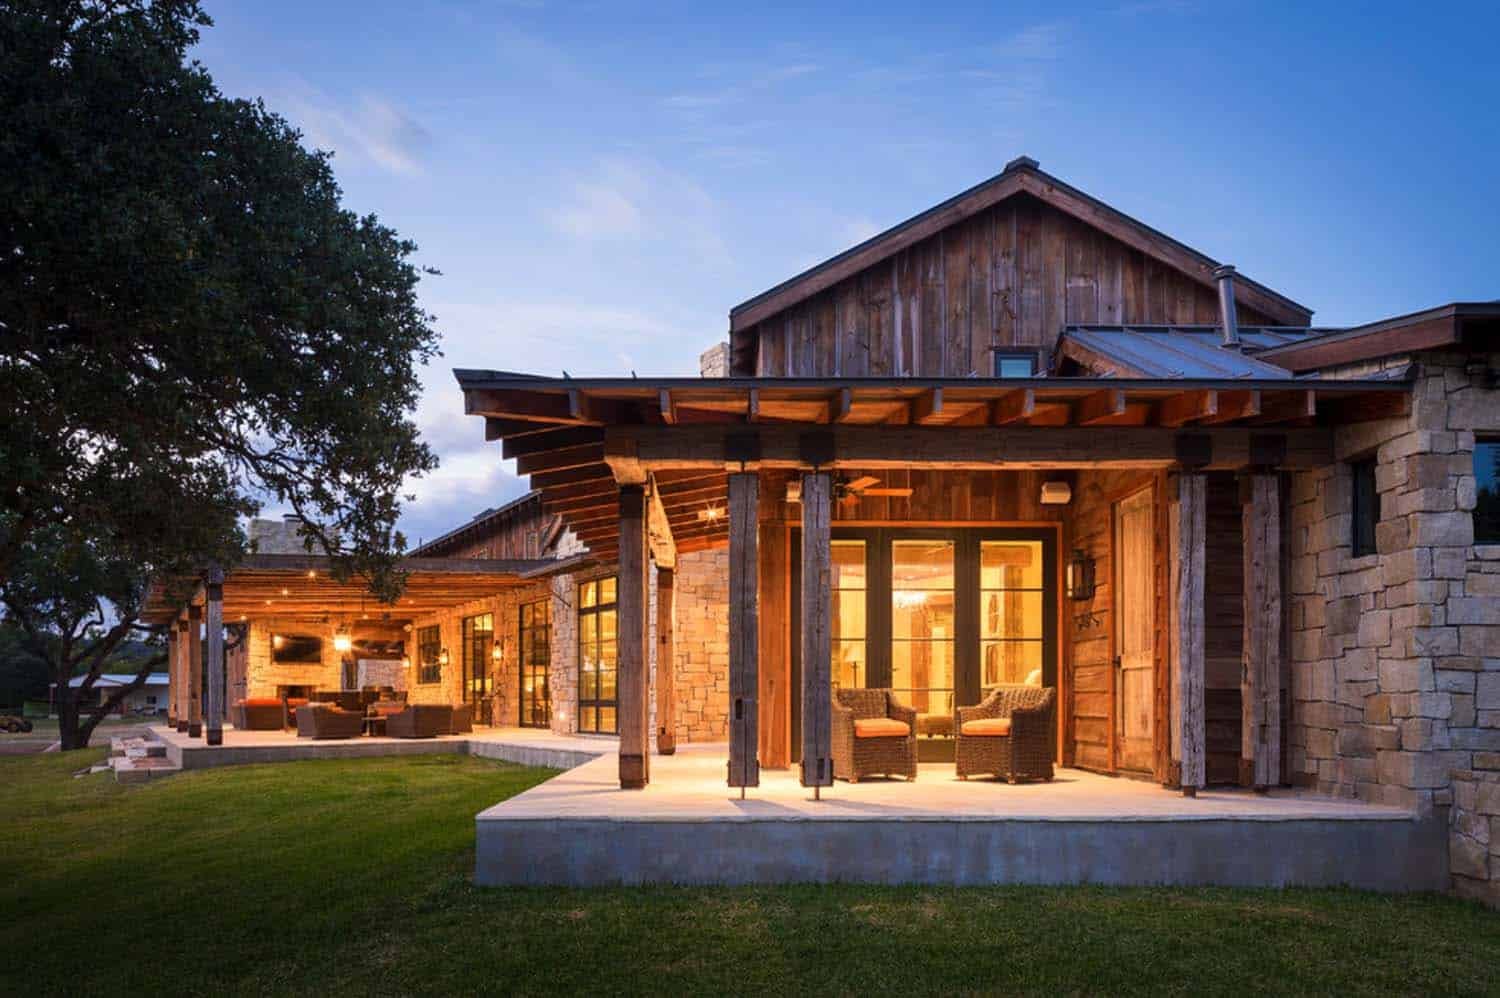 Modern rustic barn style retreat in texas hill country for Rustic style homes